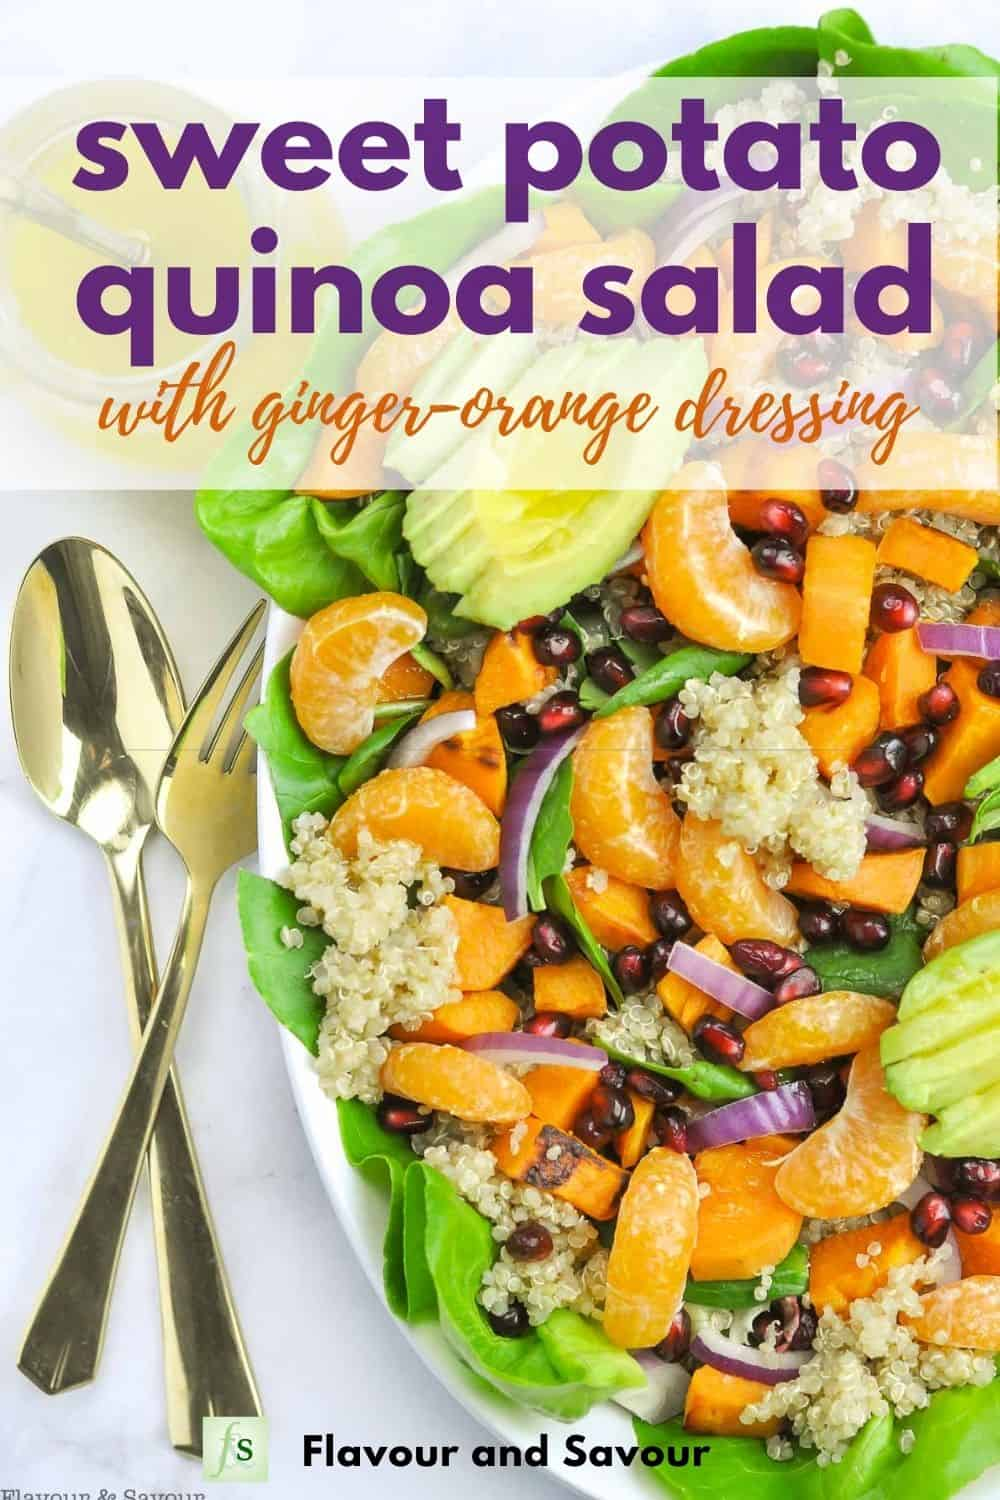 Image and text for Sweet Potato Quinoa Salad with Ginger-Orange Dressing